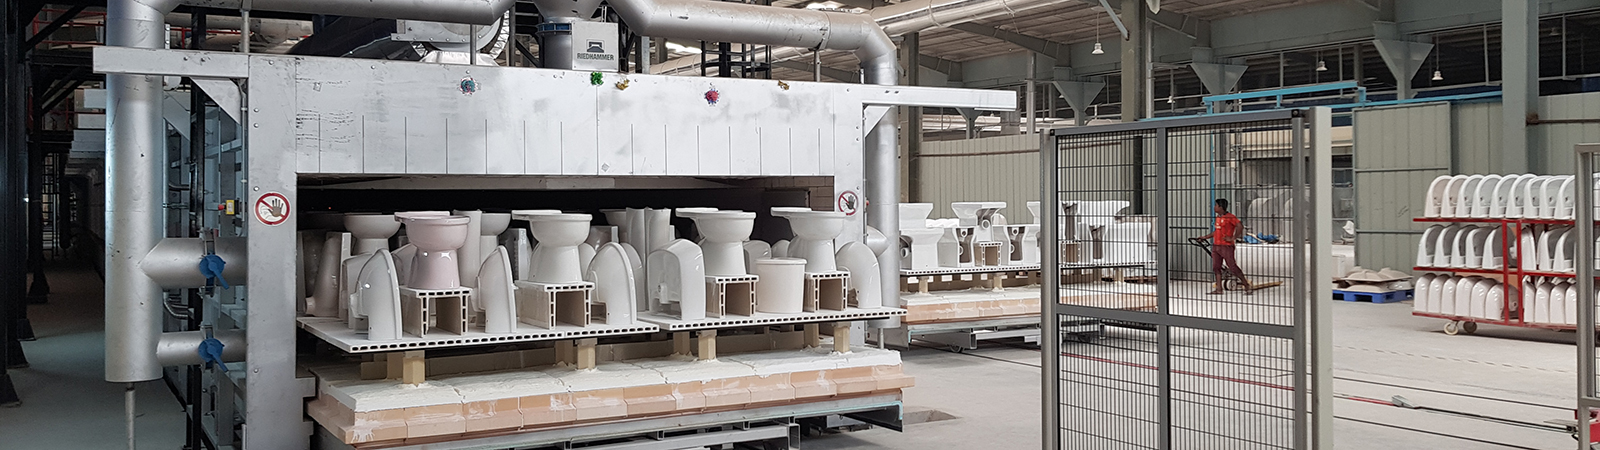 AKIJ Ceramics goes green with SACMI-Riedhammer